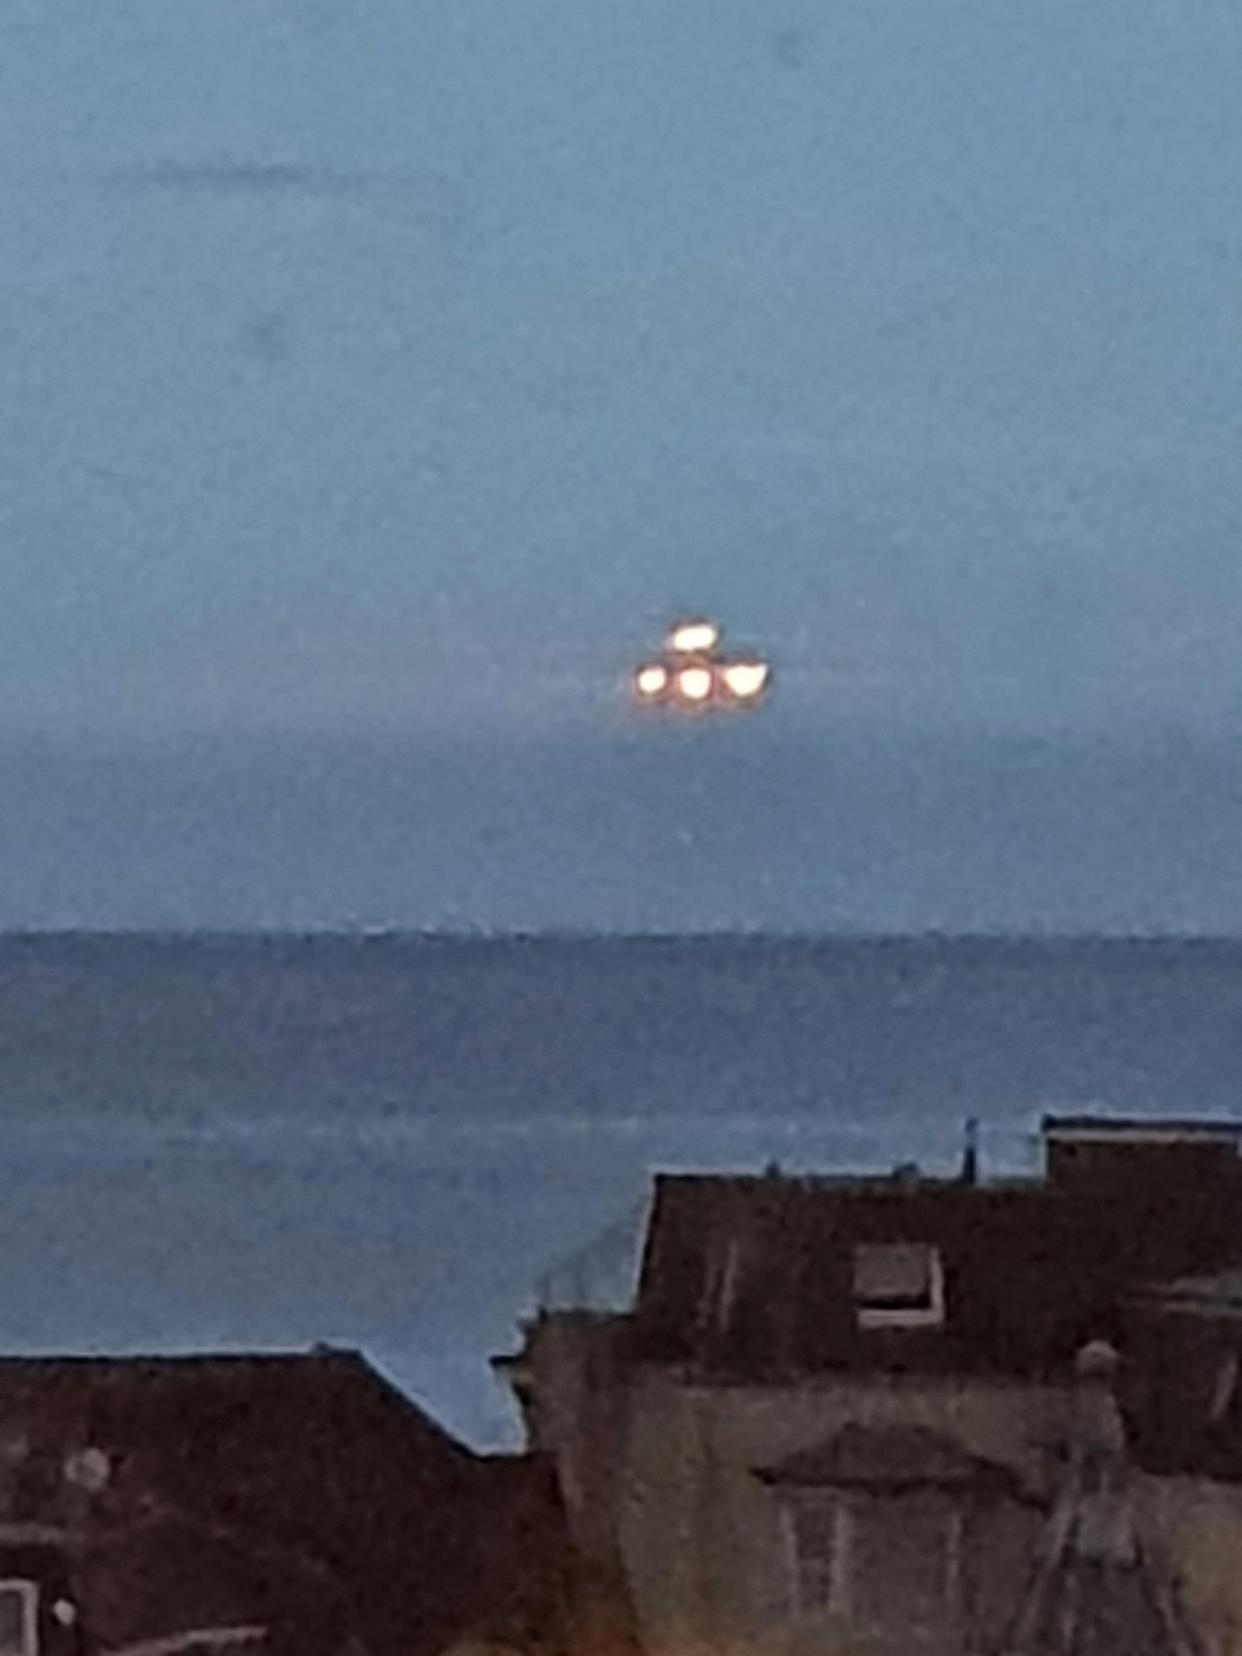 This is the moment a  student captured a large UFO hovering